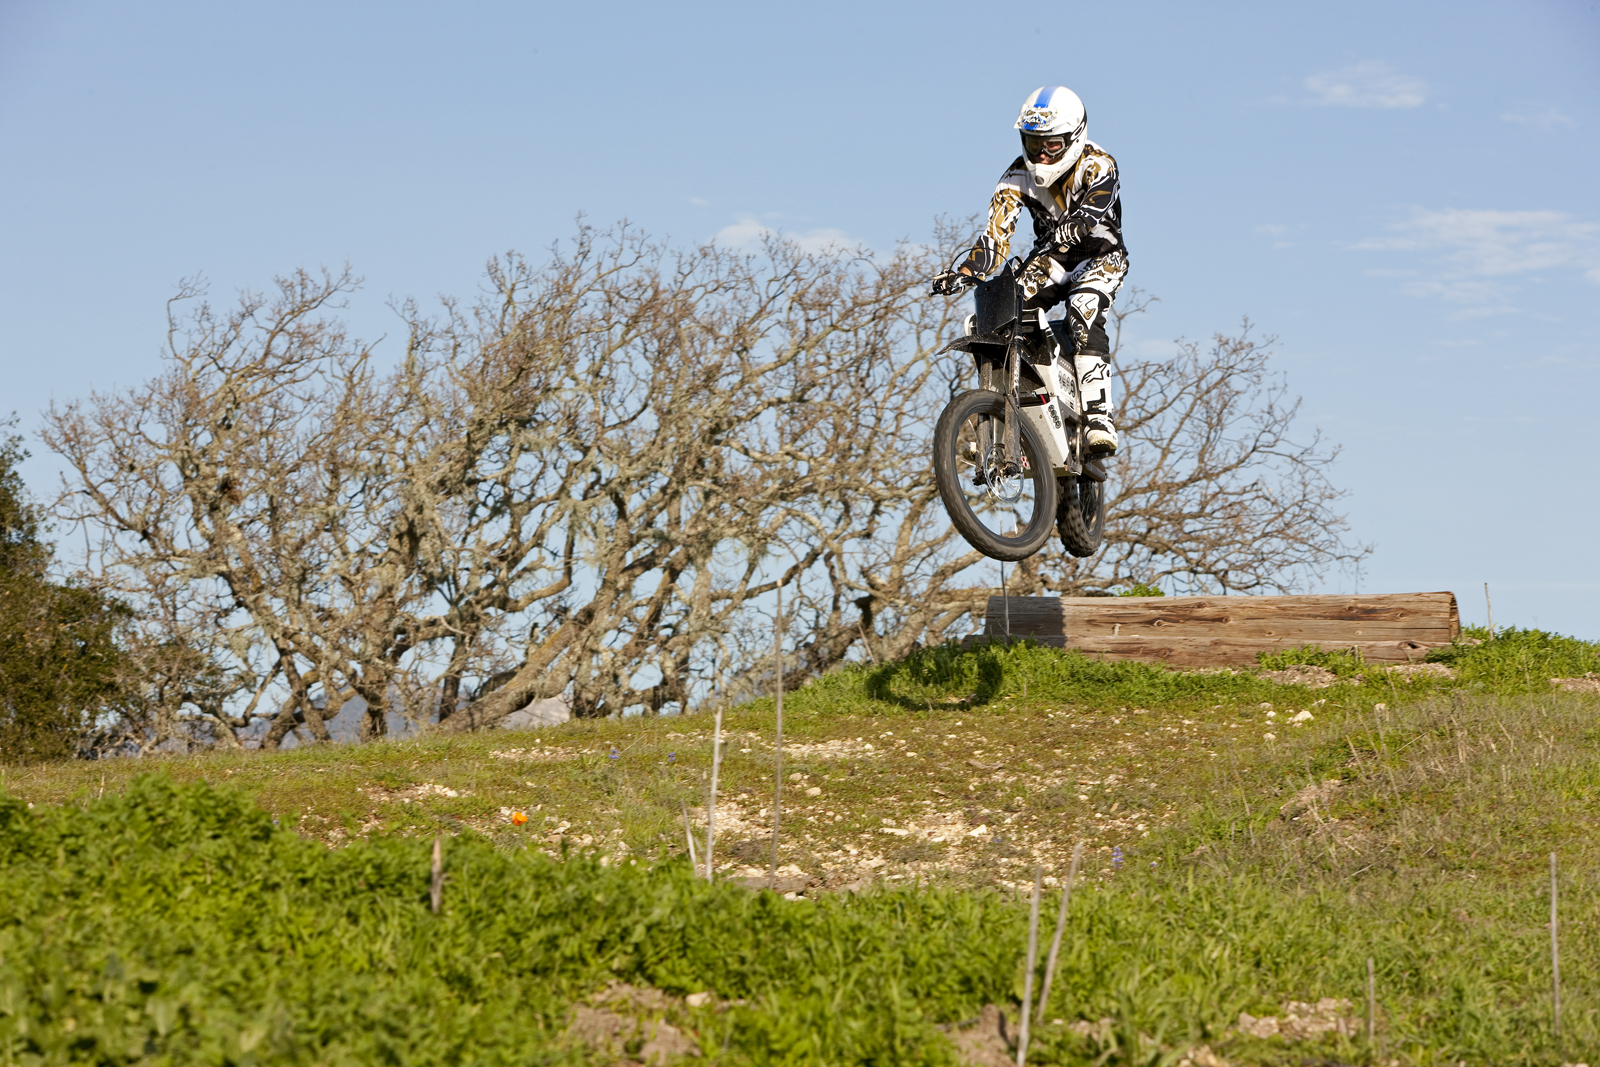 2010 Zero X Electric Motorcycle: Zaca Station - Jumps over Log